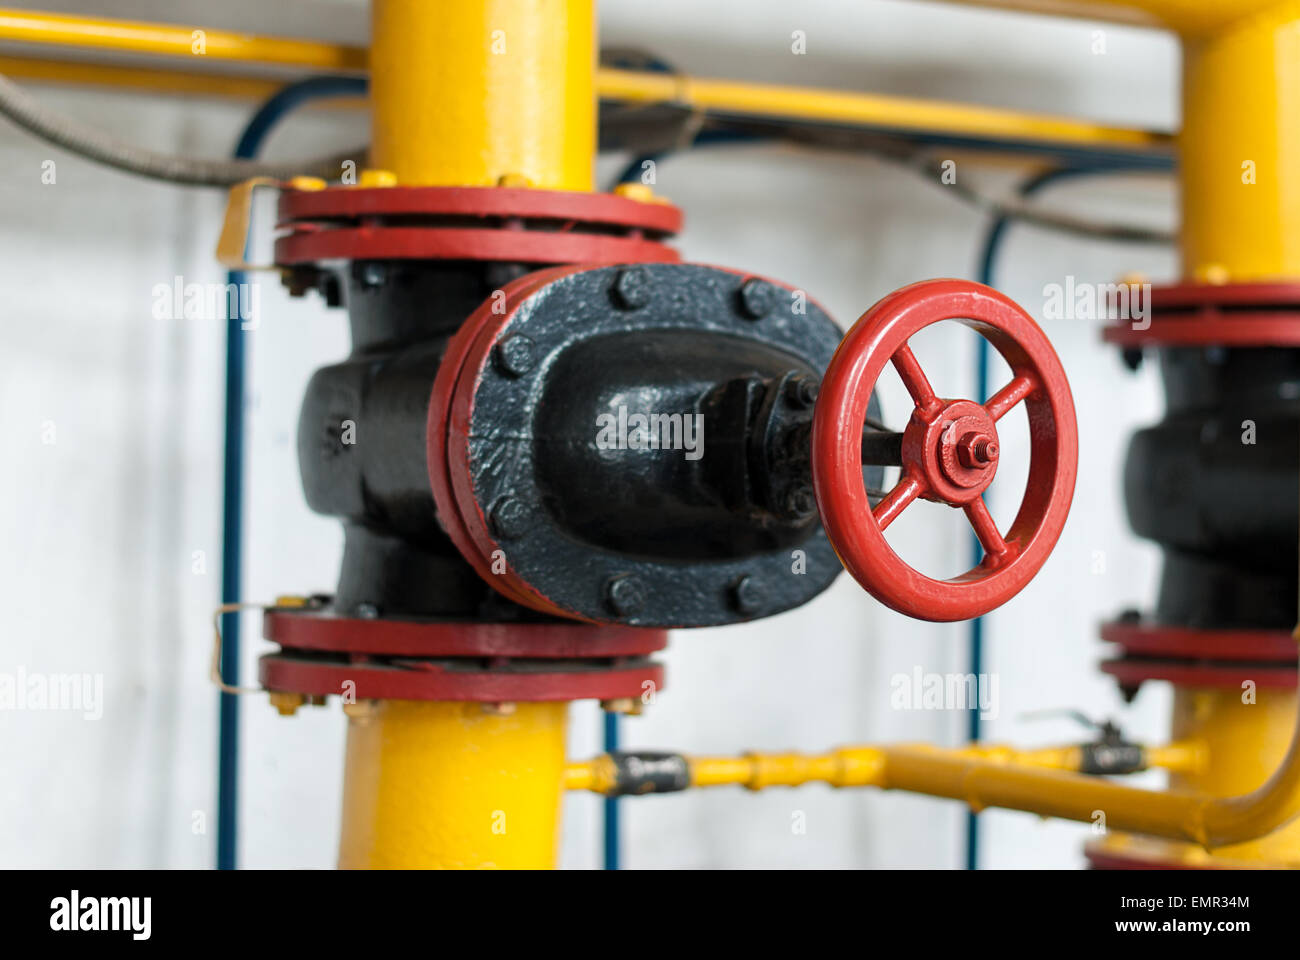 Gas Manometer Stockfotos & Gas Manometer Bilder - Alamy